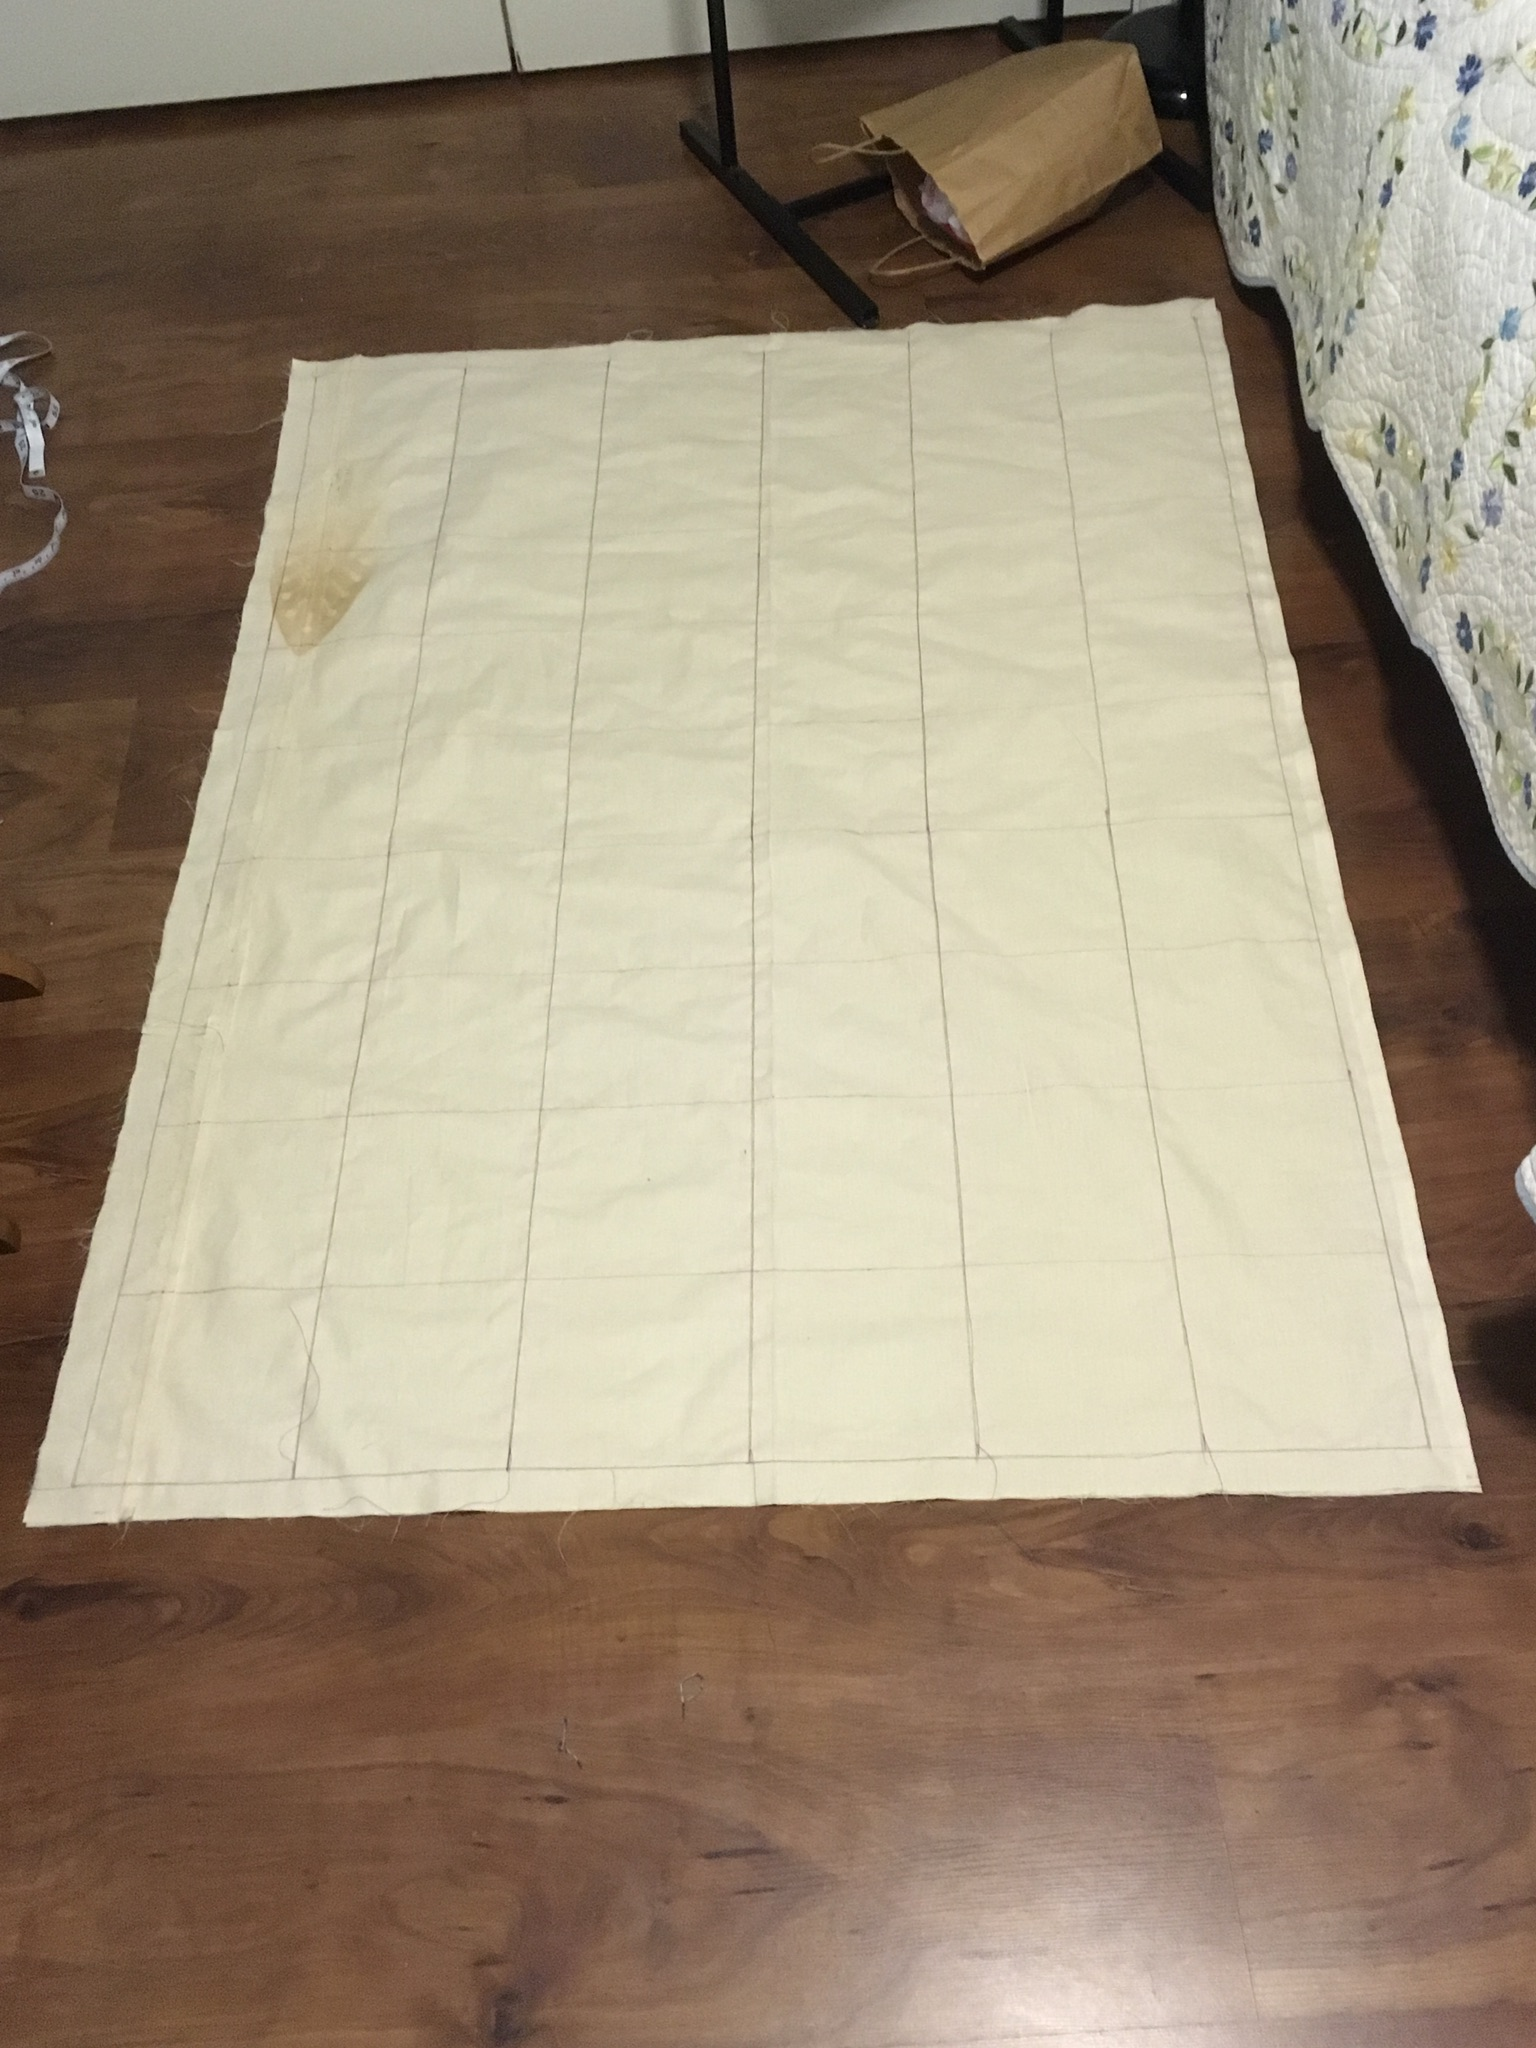 How To Make A Weighted Blanket 5 Steps With Pictures Instructables